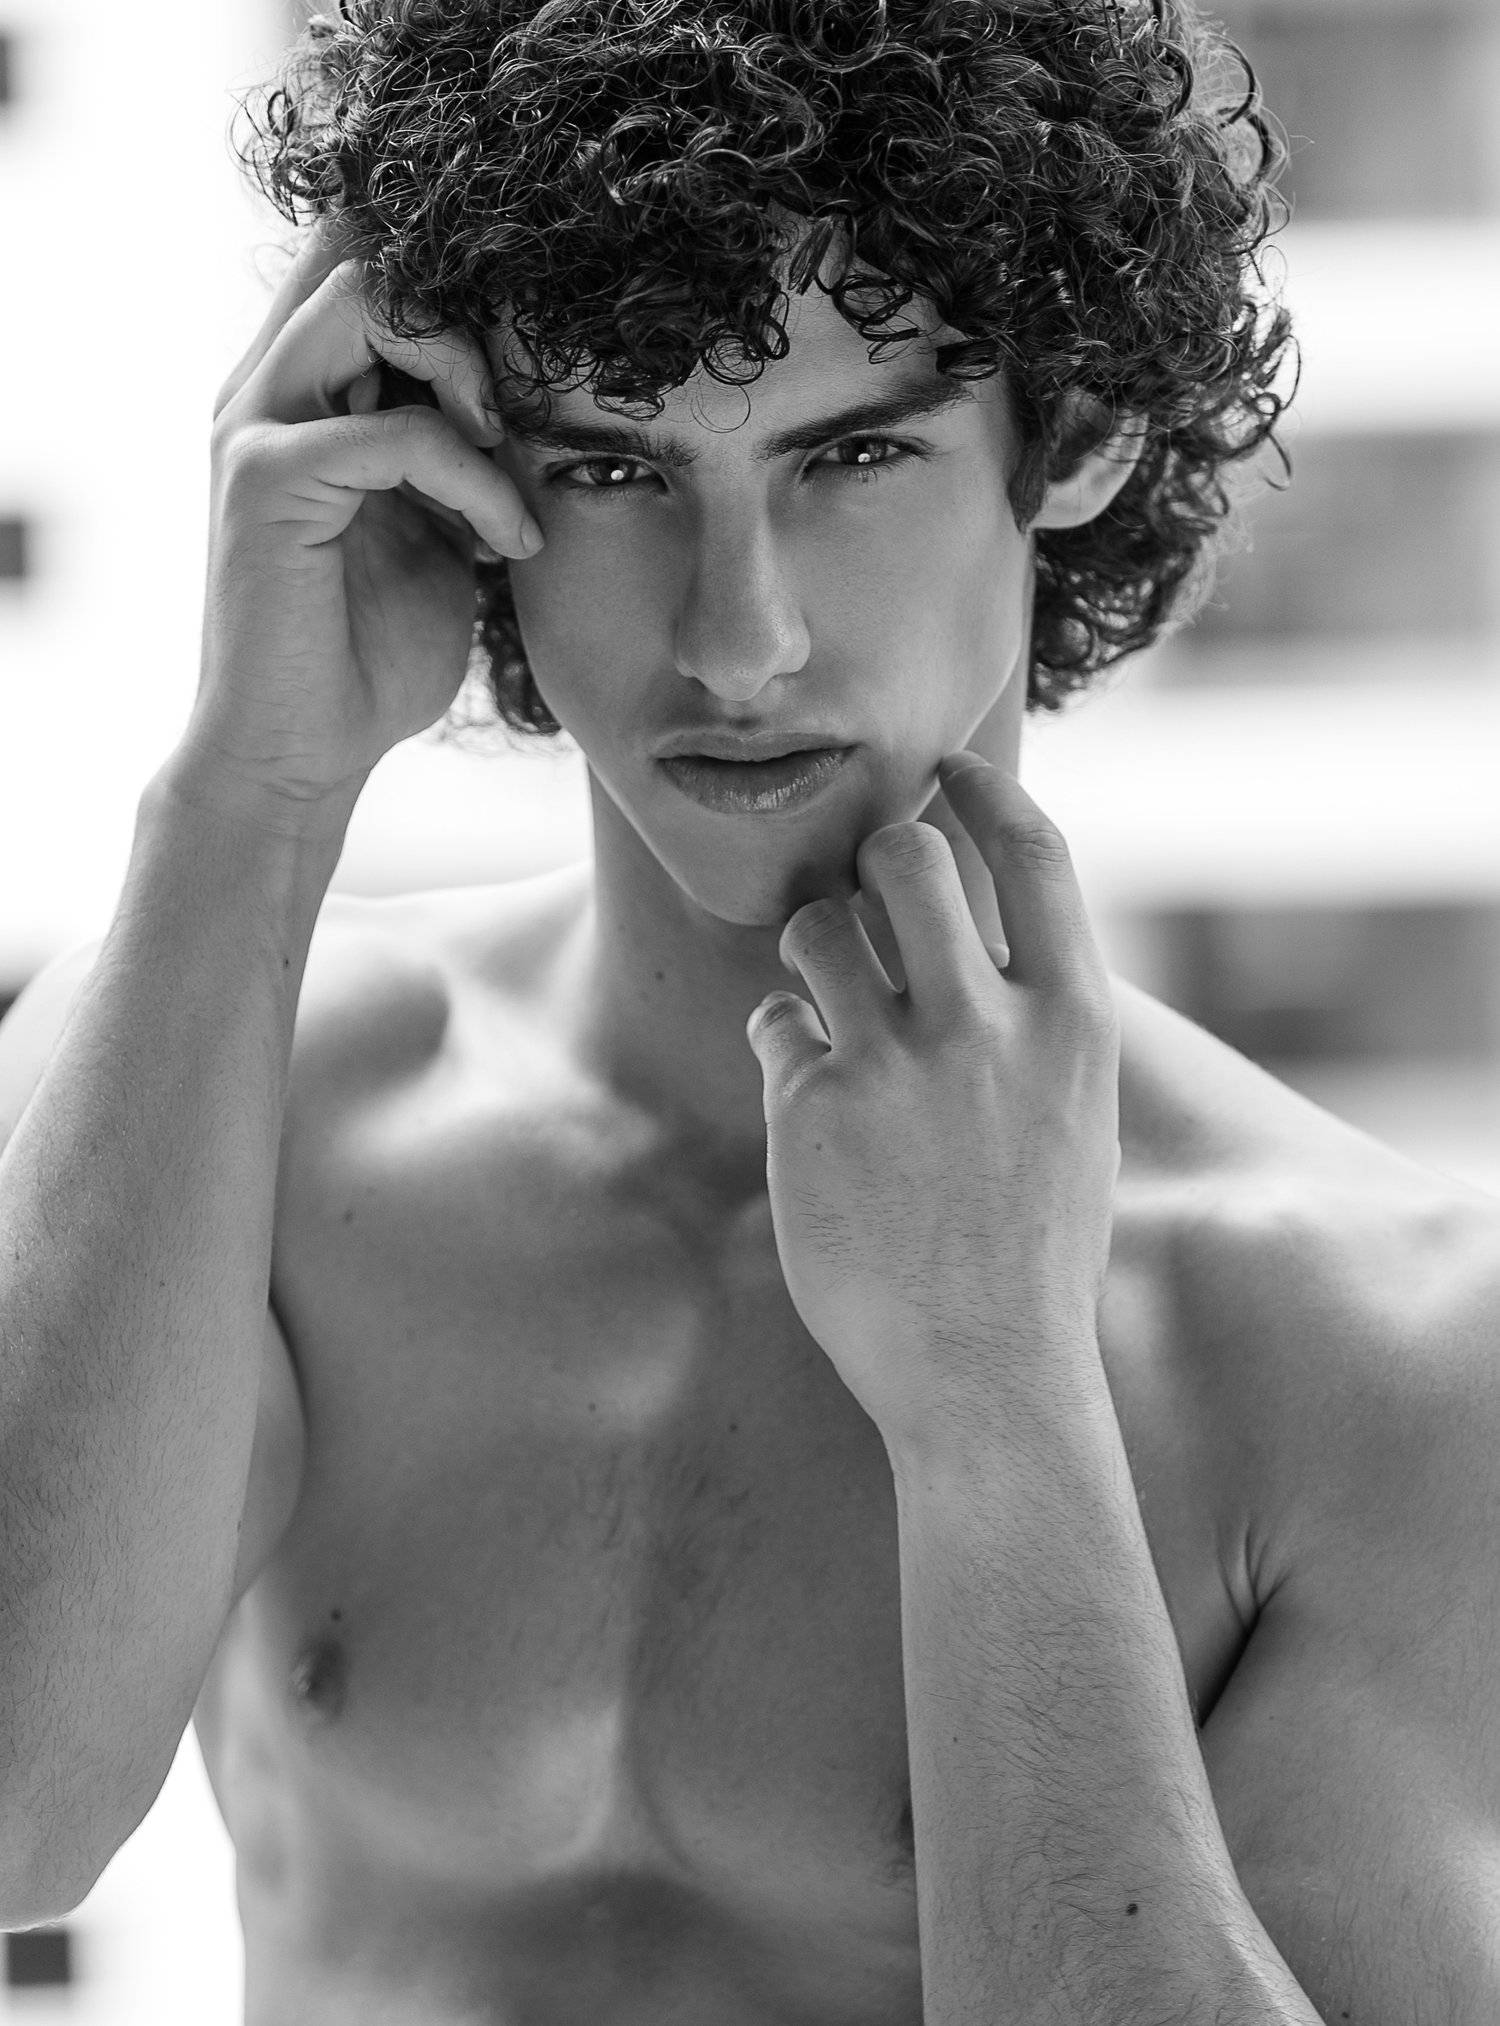 Adon Exclusive: Model Guilherme Teobaldo By Jason Oung